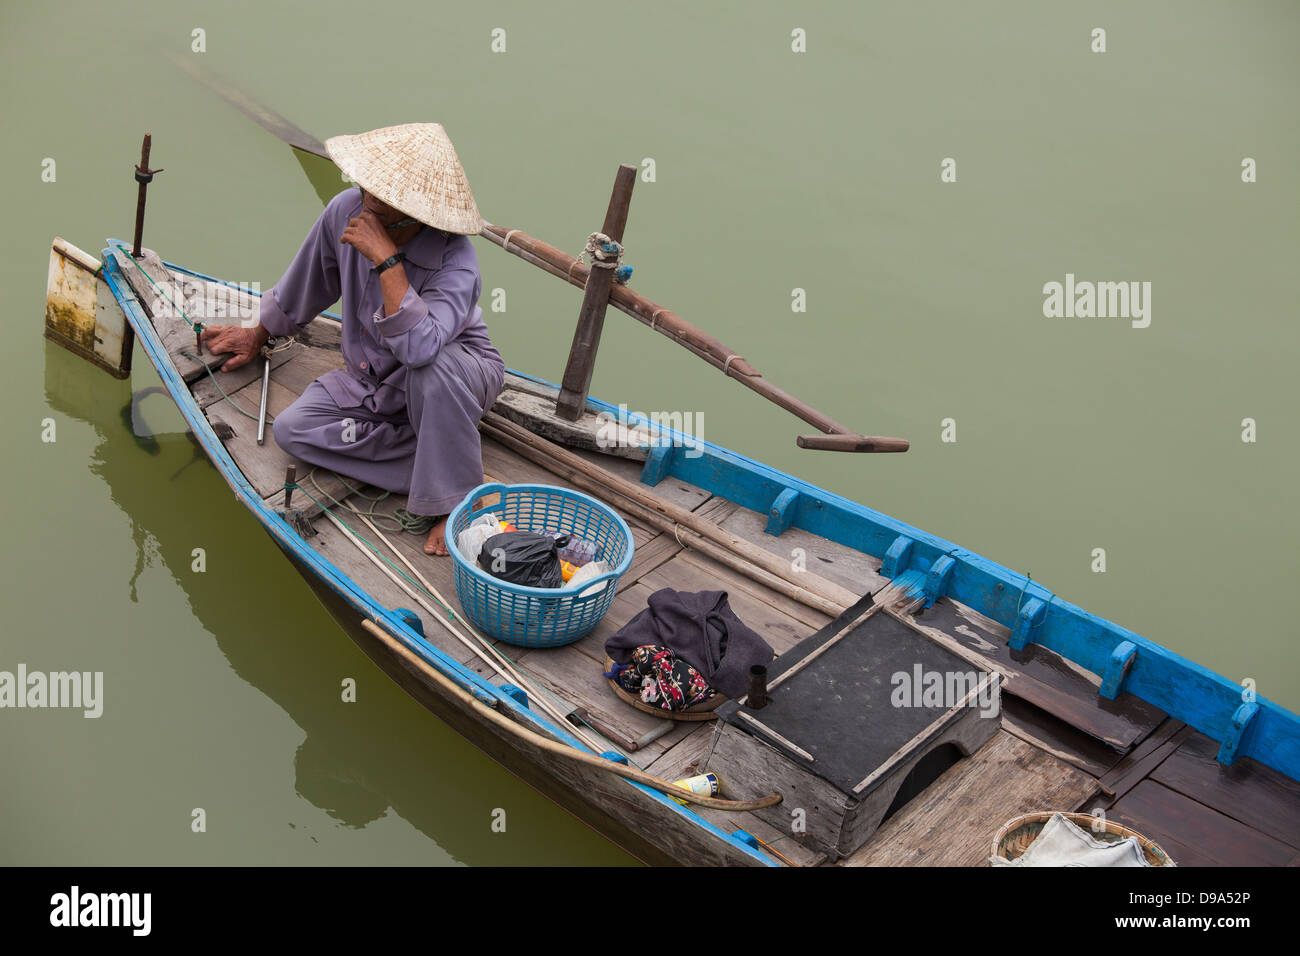 Man in boat on river near Hoi An, Vietnam - Stock Image